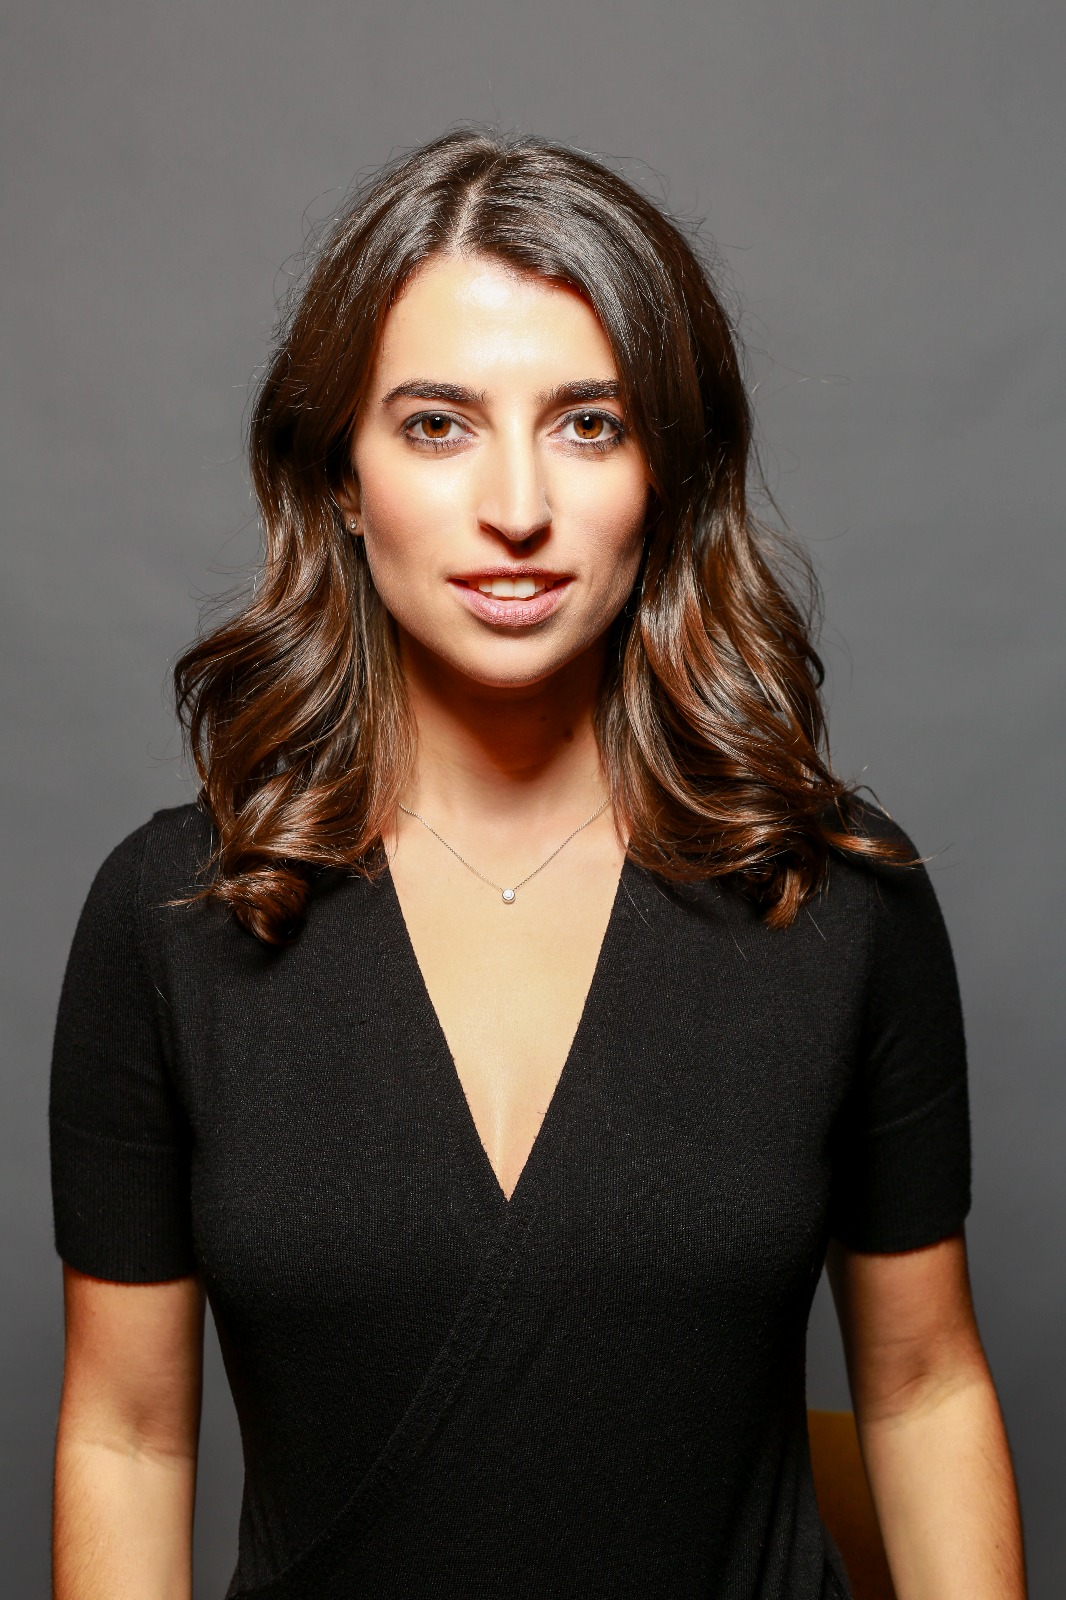 Yael Wissner-Levy, Head of Communications and Content